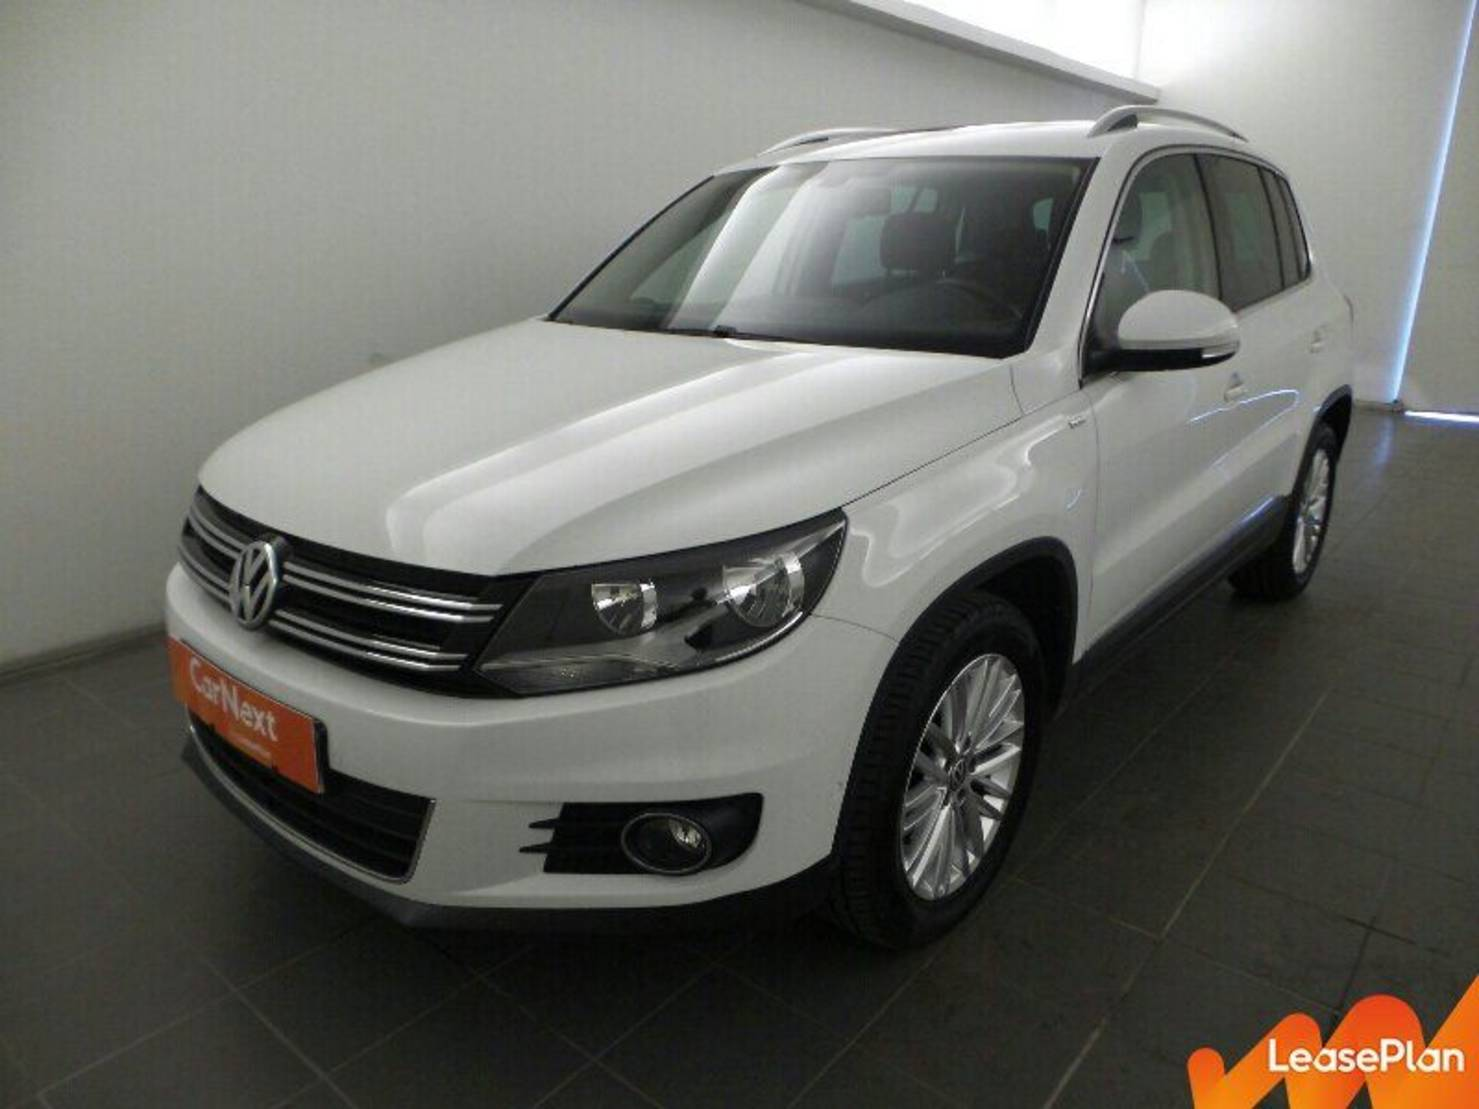 Volkswagen Tiguan 2.0 TDI 110 FAP BlueMotion Technology, Cup detail1